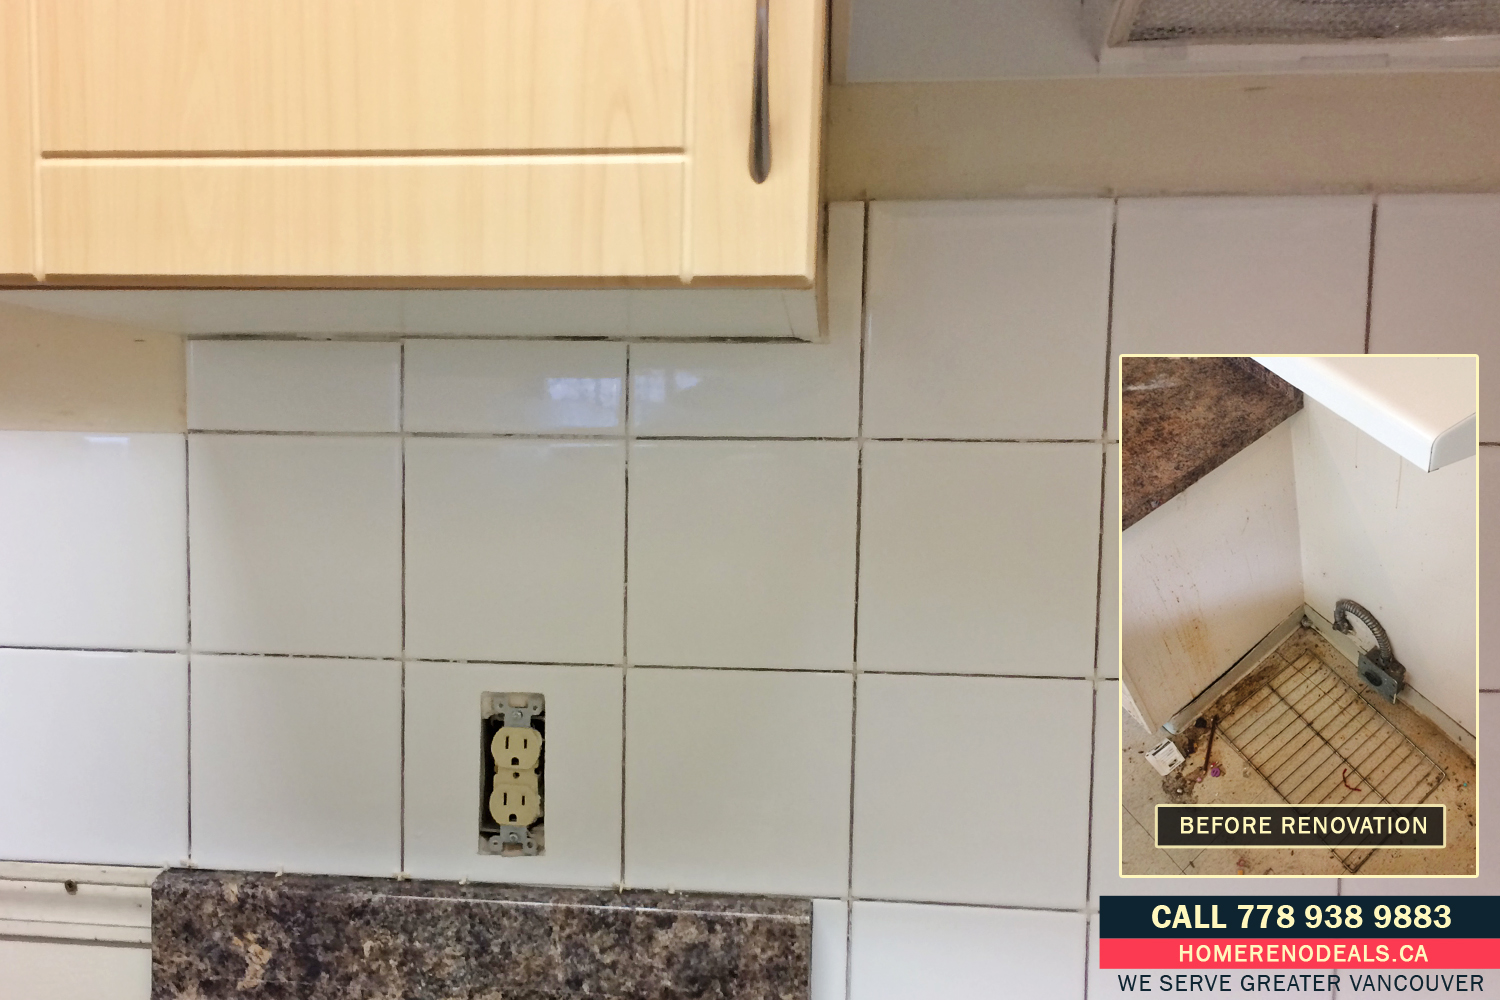 Backsplash installation and kitchen tiling deals greater vancouver bc tile cutting kitchen tiling and home renovation deals in greate dailygadgetfo Images